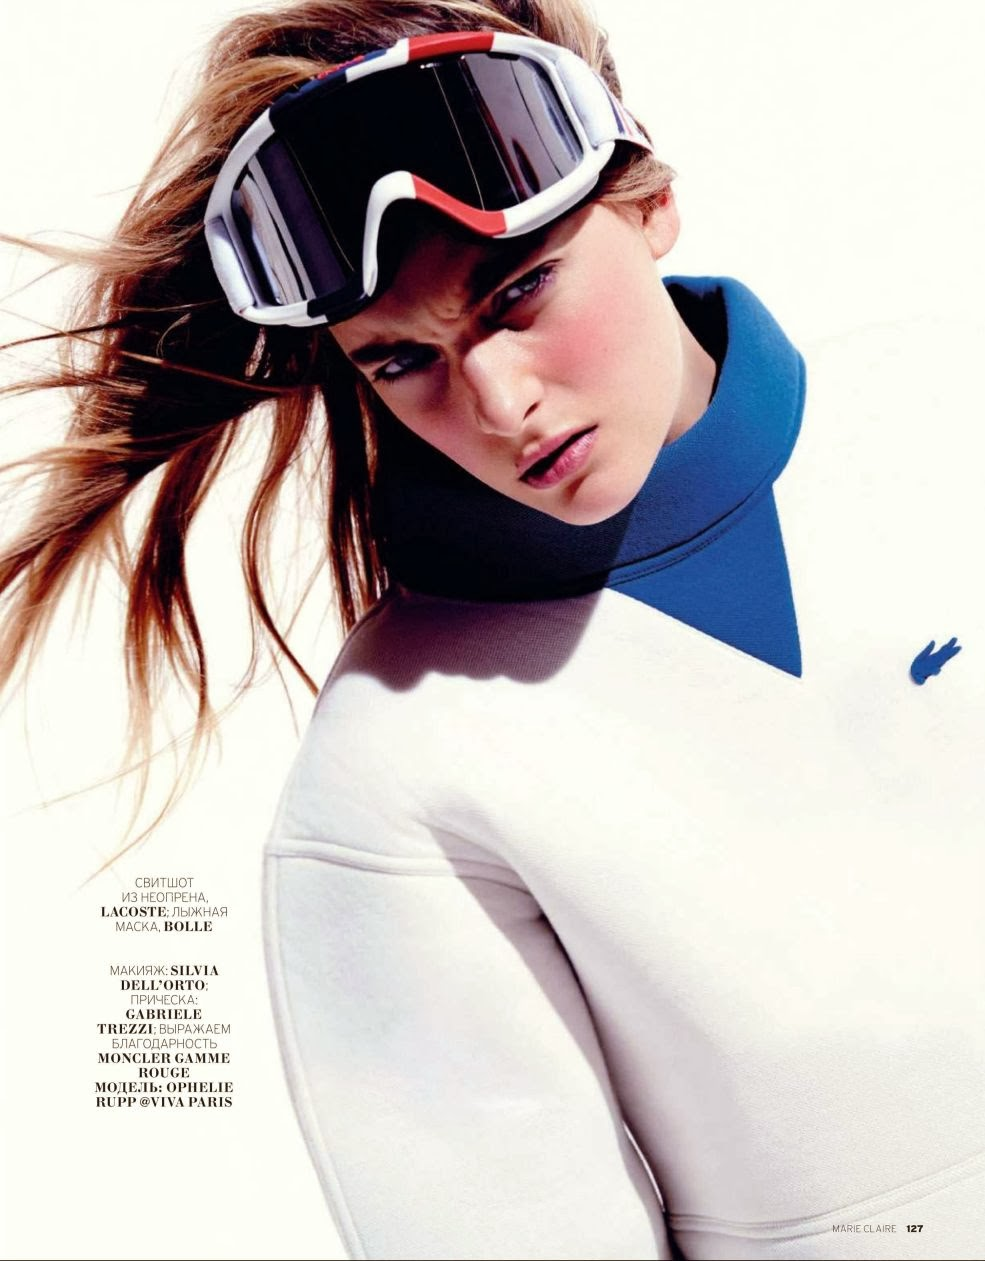 Ophelie Rupp HQ Pictures Marie Claire Russia Magazine Photoshoot February 2014